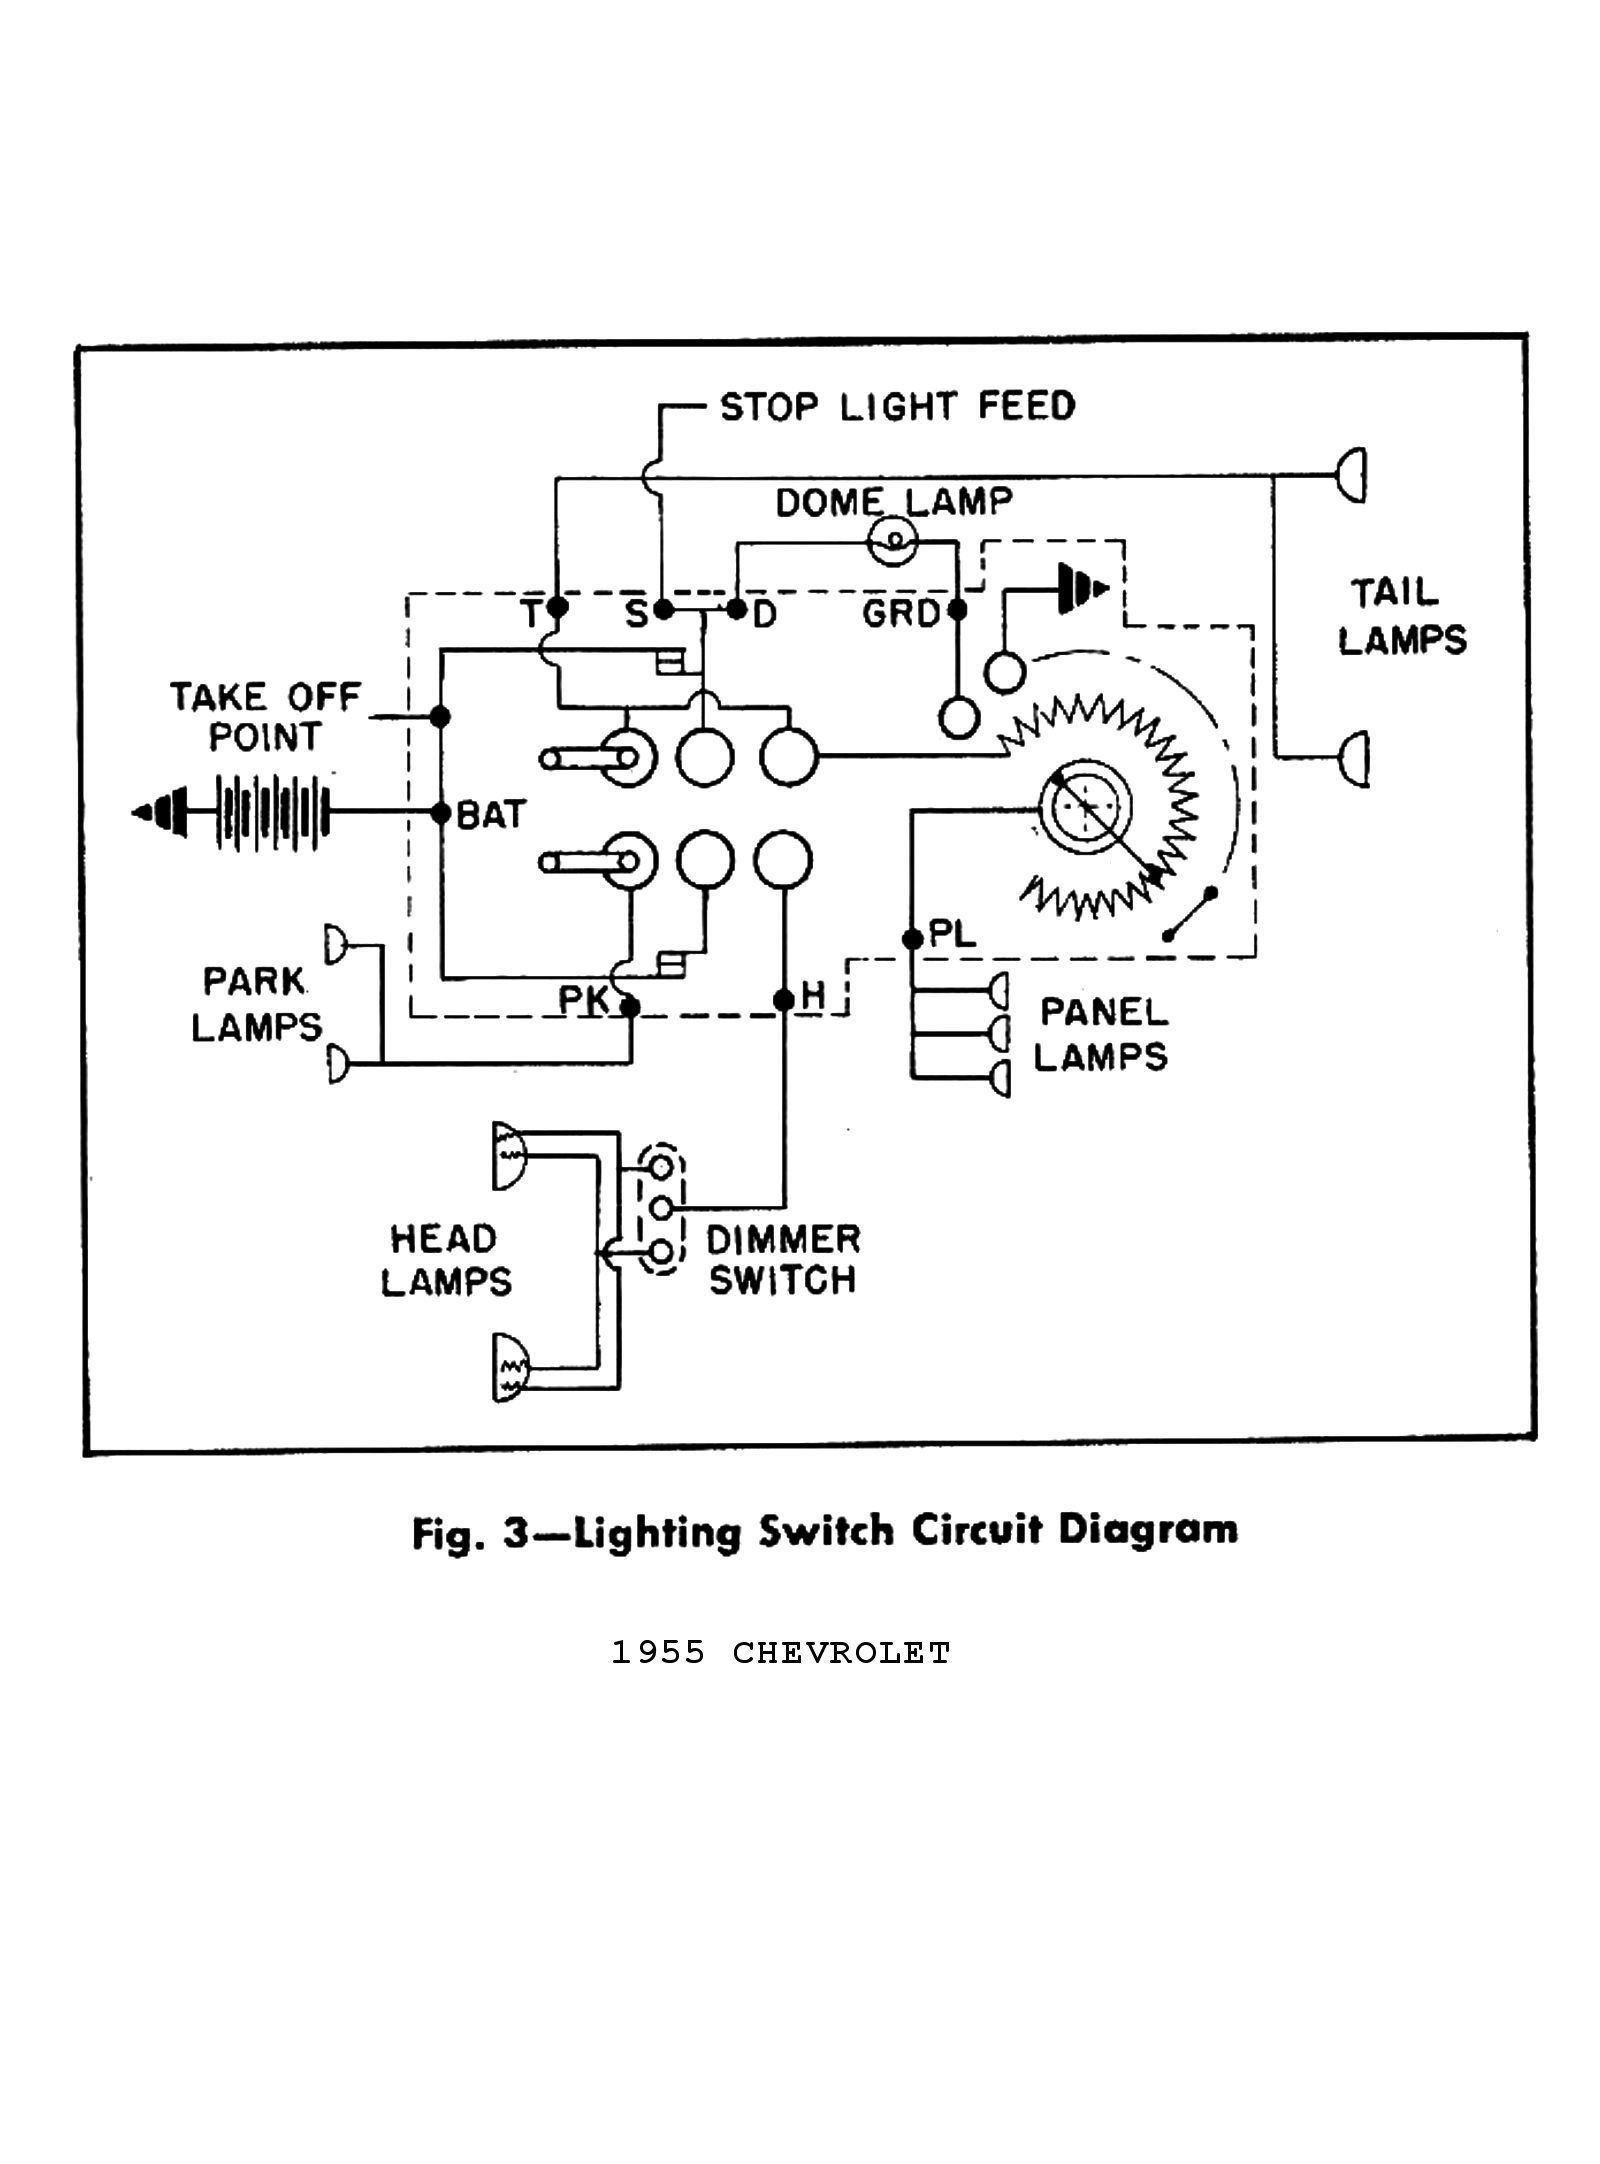 Wiring Diagram For Chevy Ignition Switch Realistic Heart Dome Light Door 55 Best Library Universal Inspirational 1955 Of